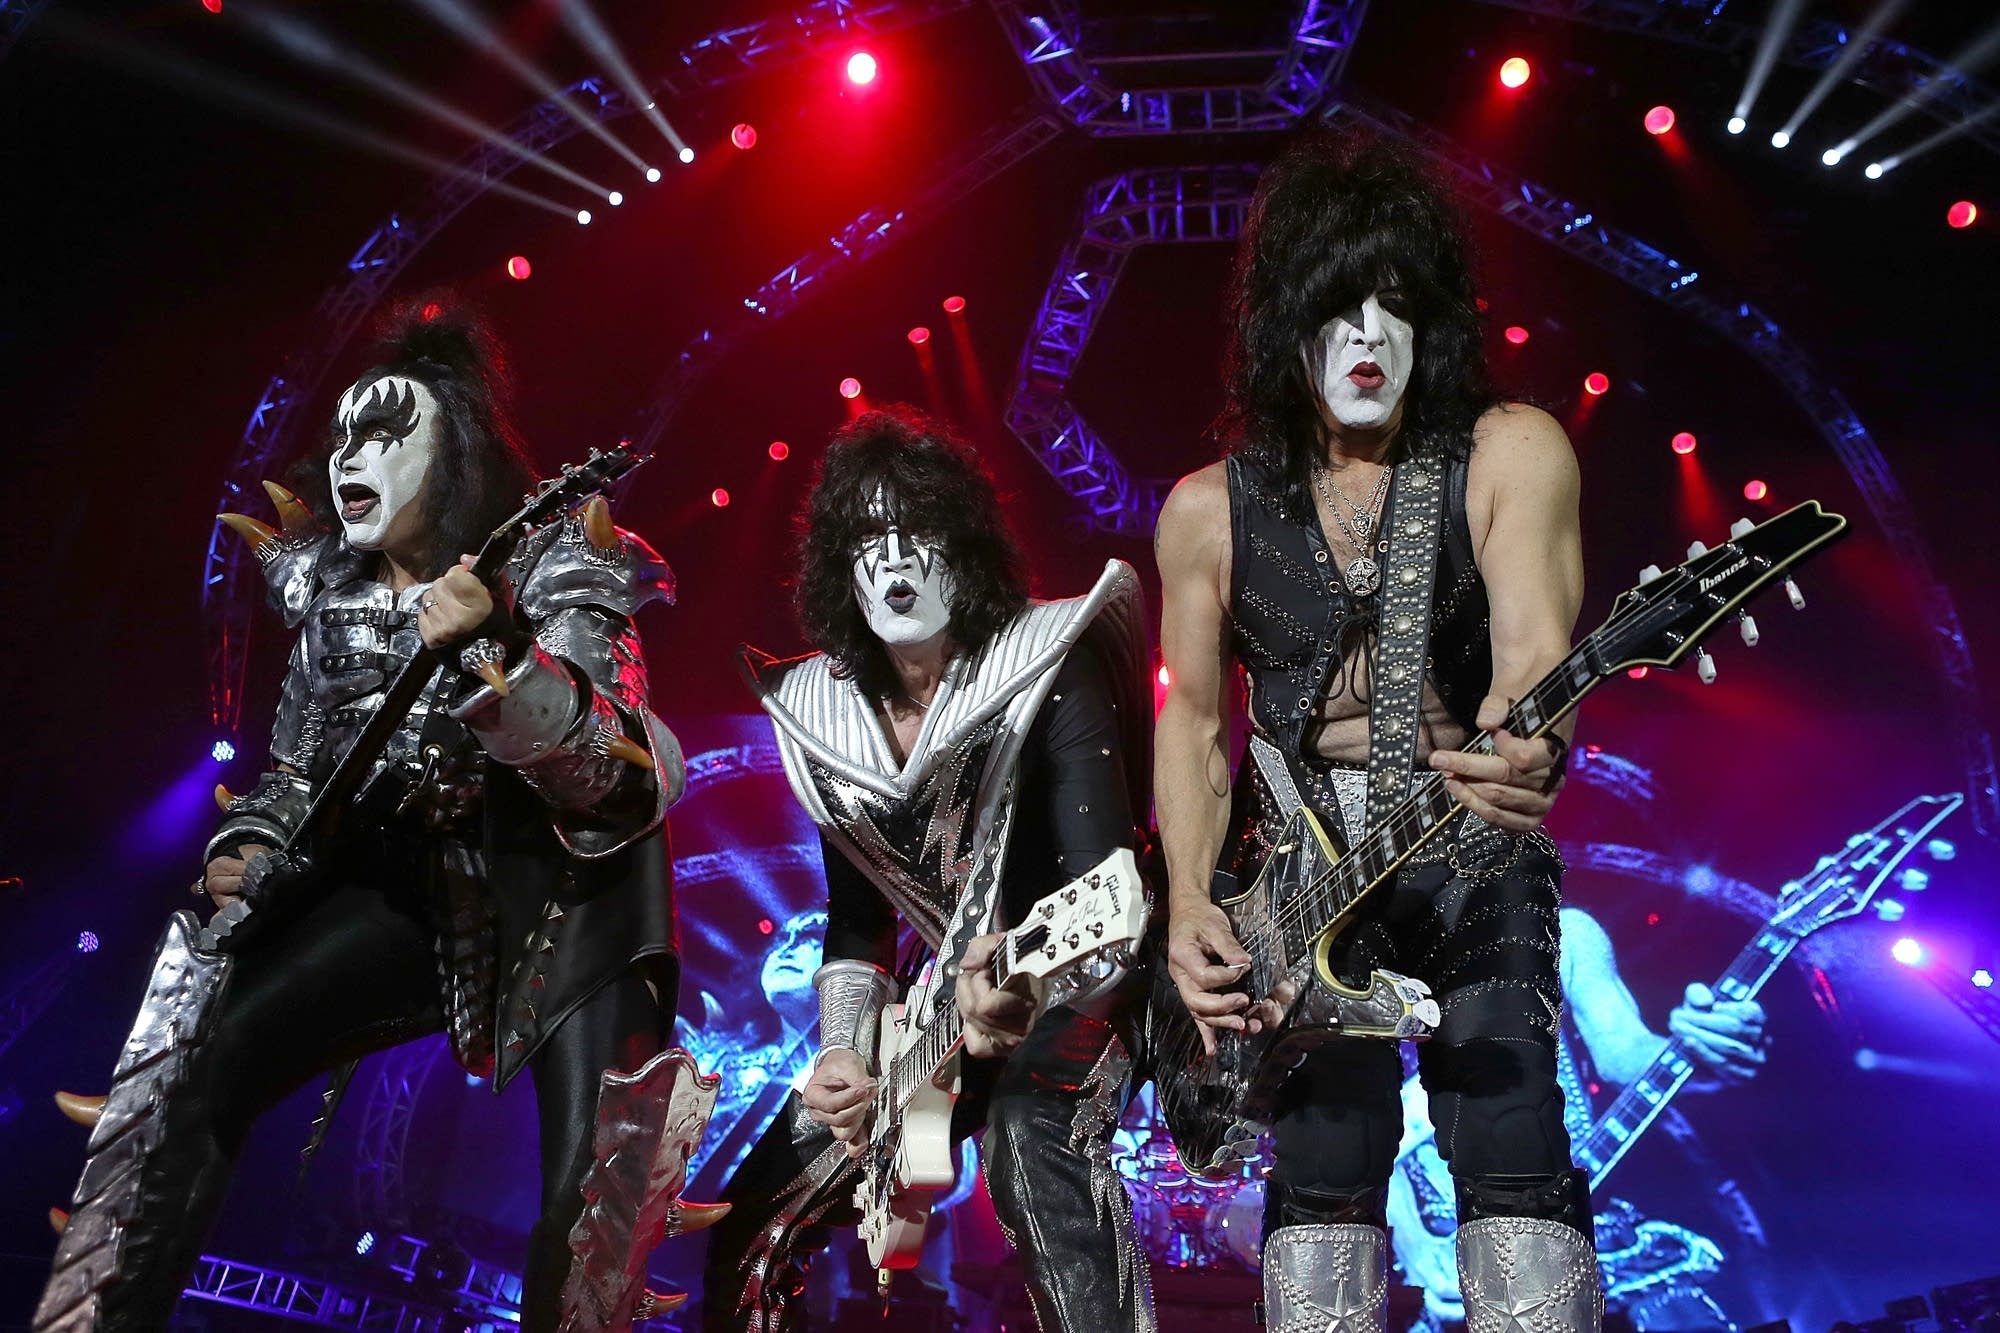 KISS was one of the bands targeted by the Peters Brothers.